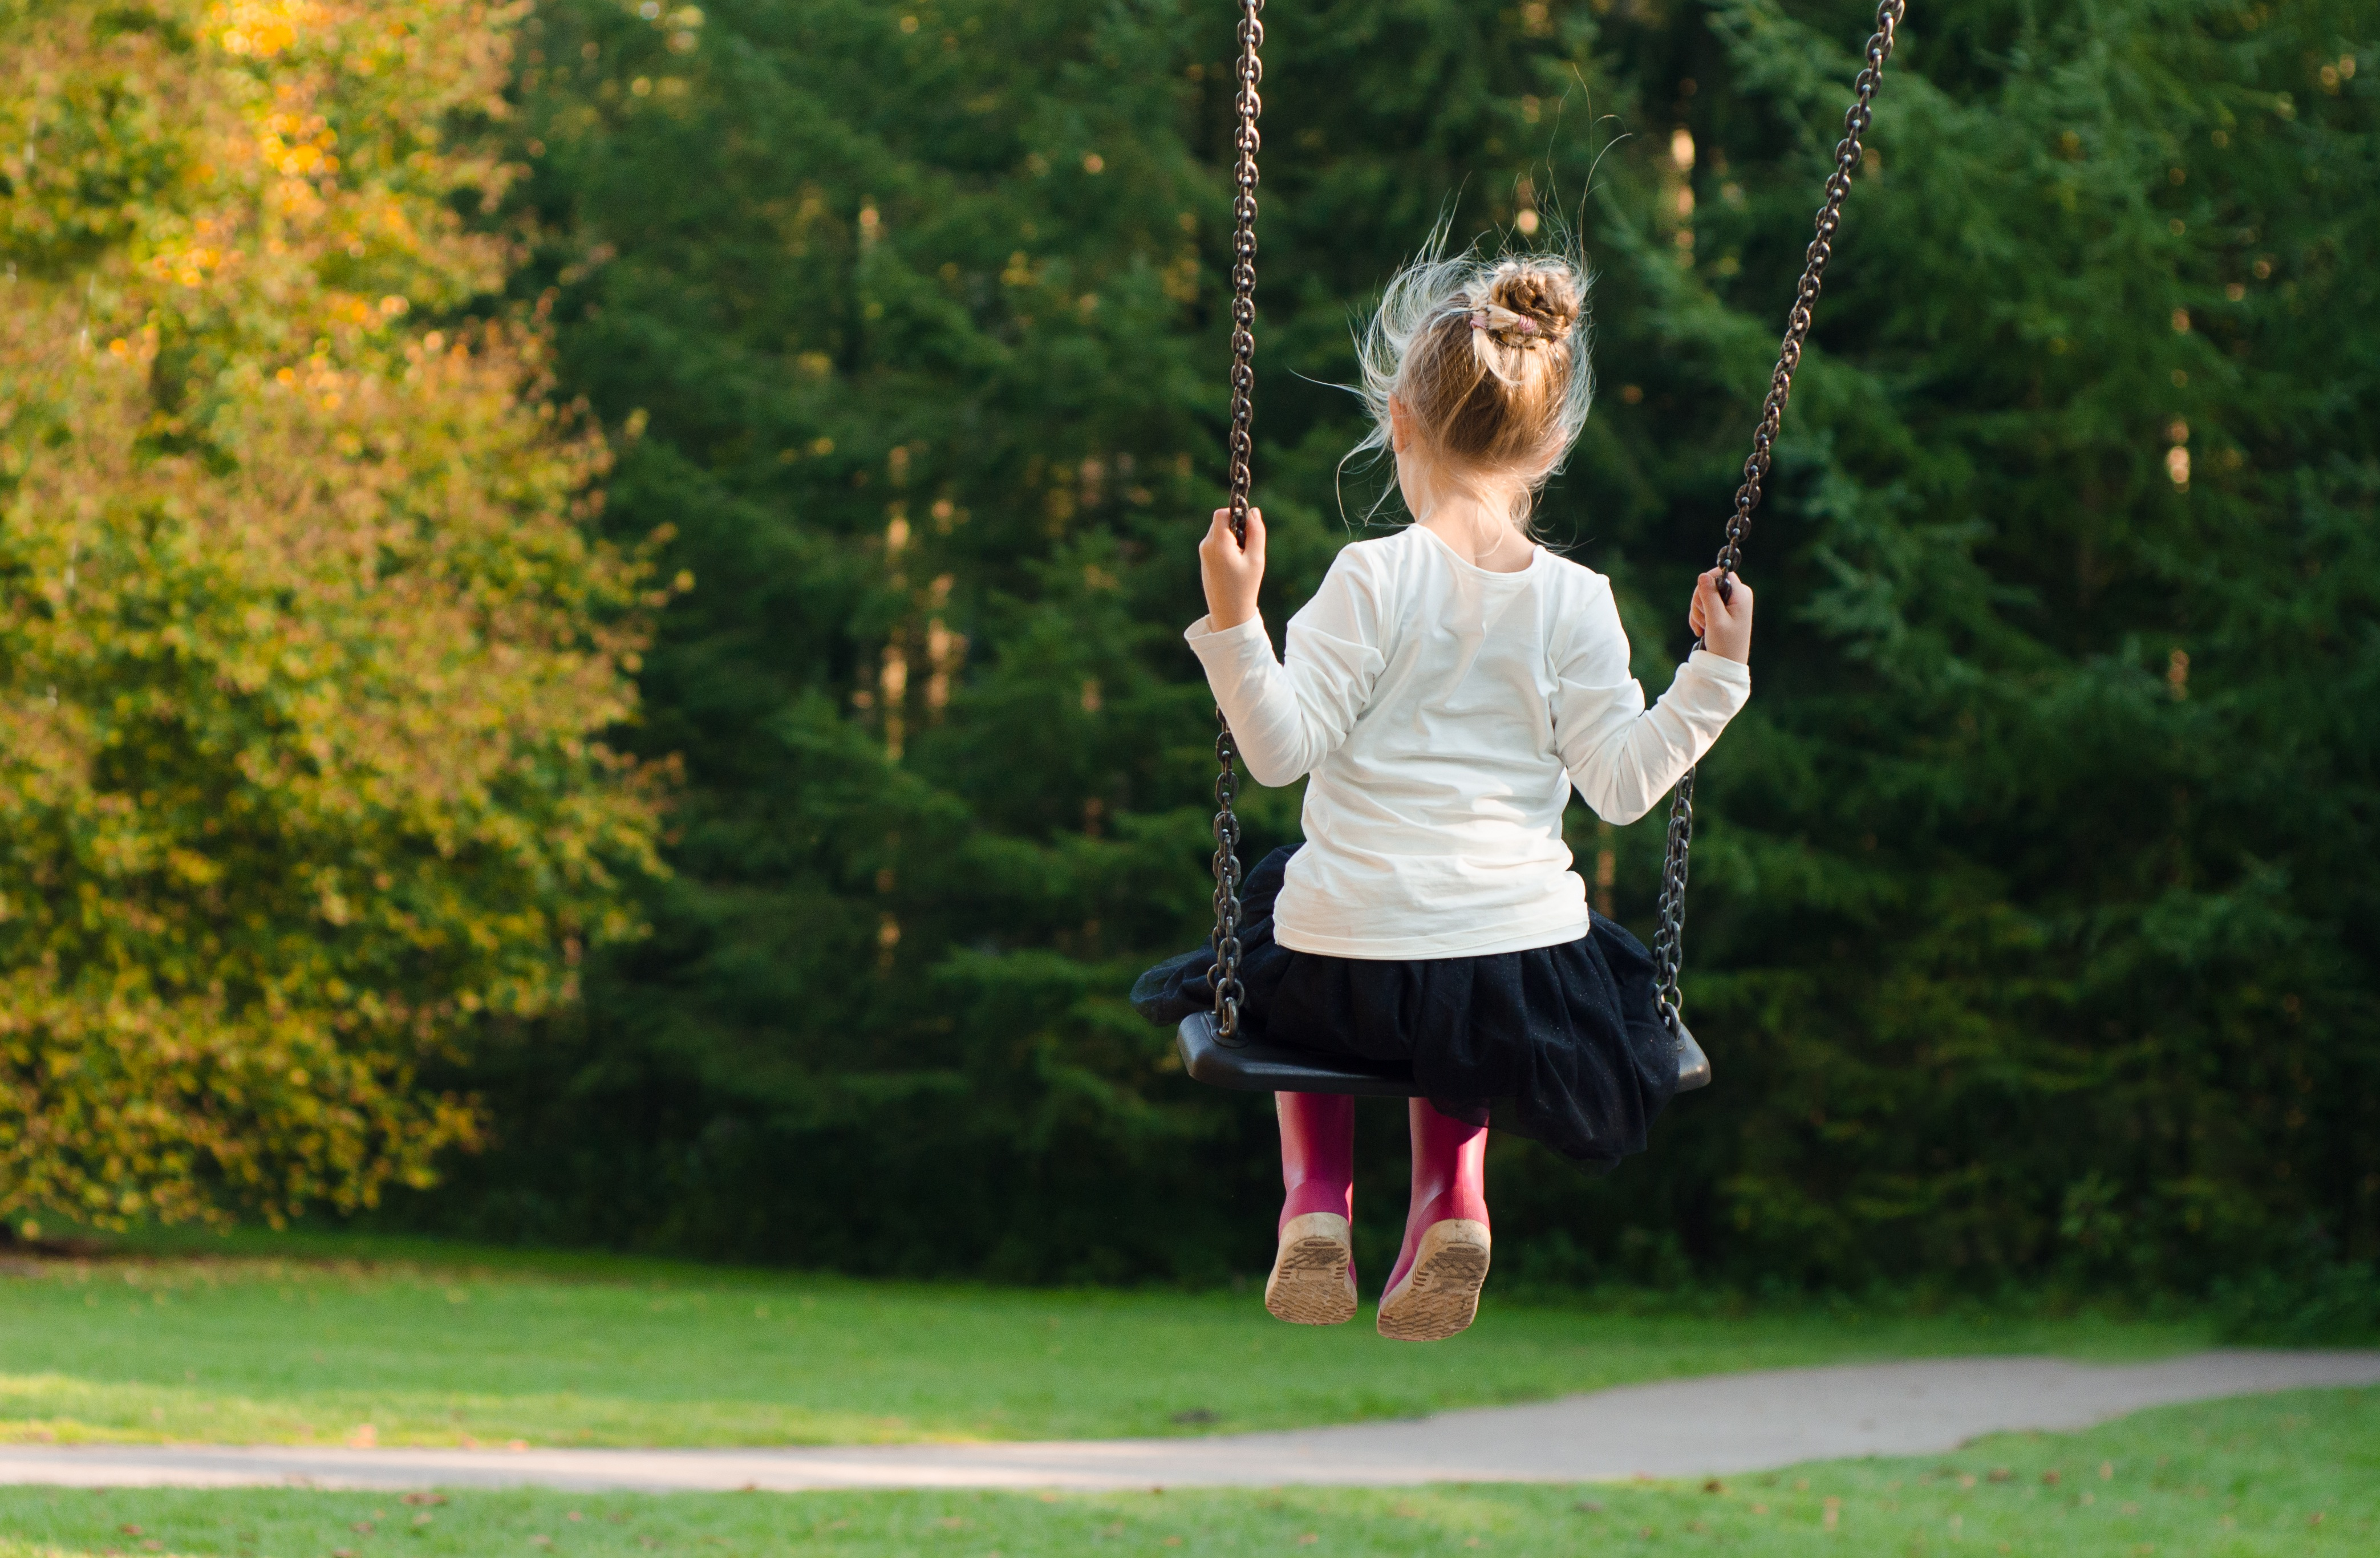 Up, Up, and Away!: 7 Ways Using a Swing Benefits Your Child with Special Needs